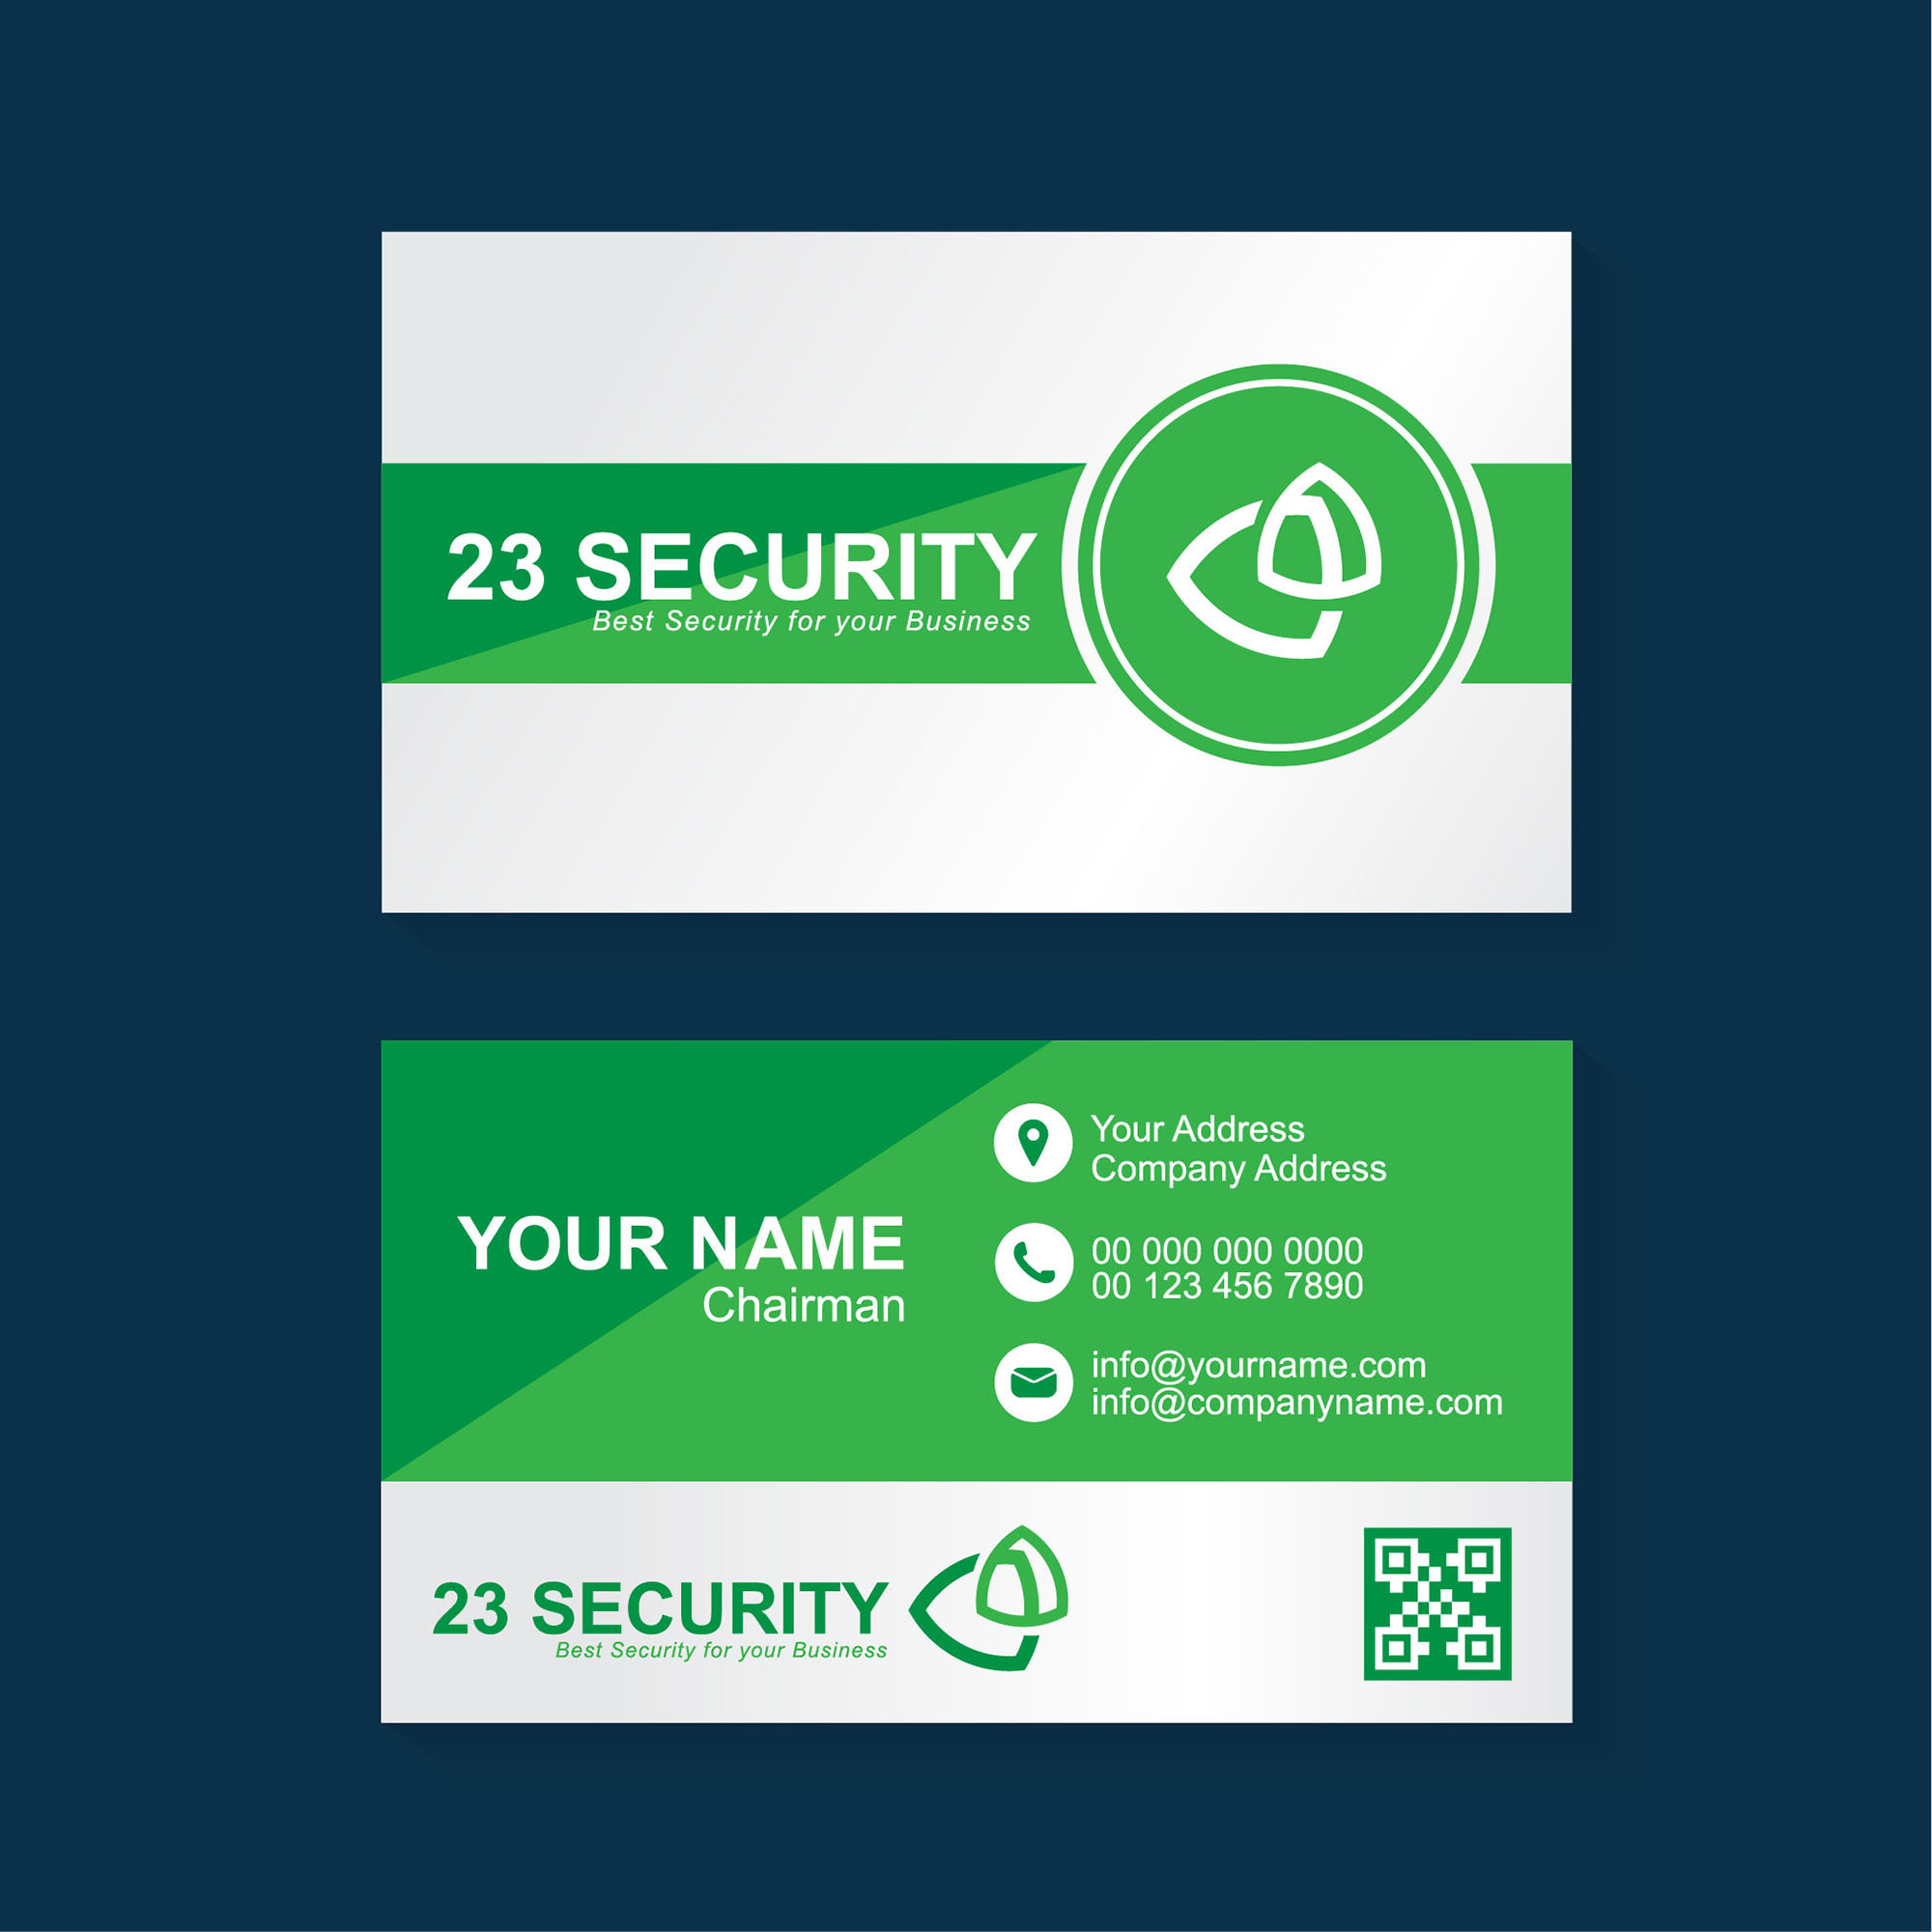 Security business card template free download wisxi business card business cards business card design business card template design templates flashek